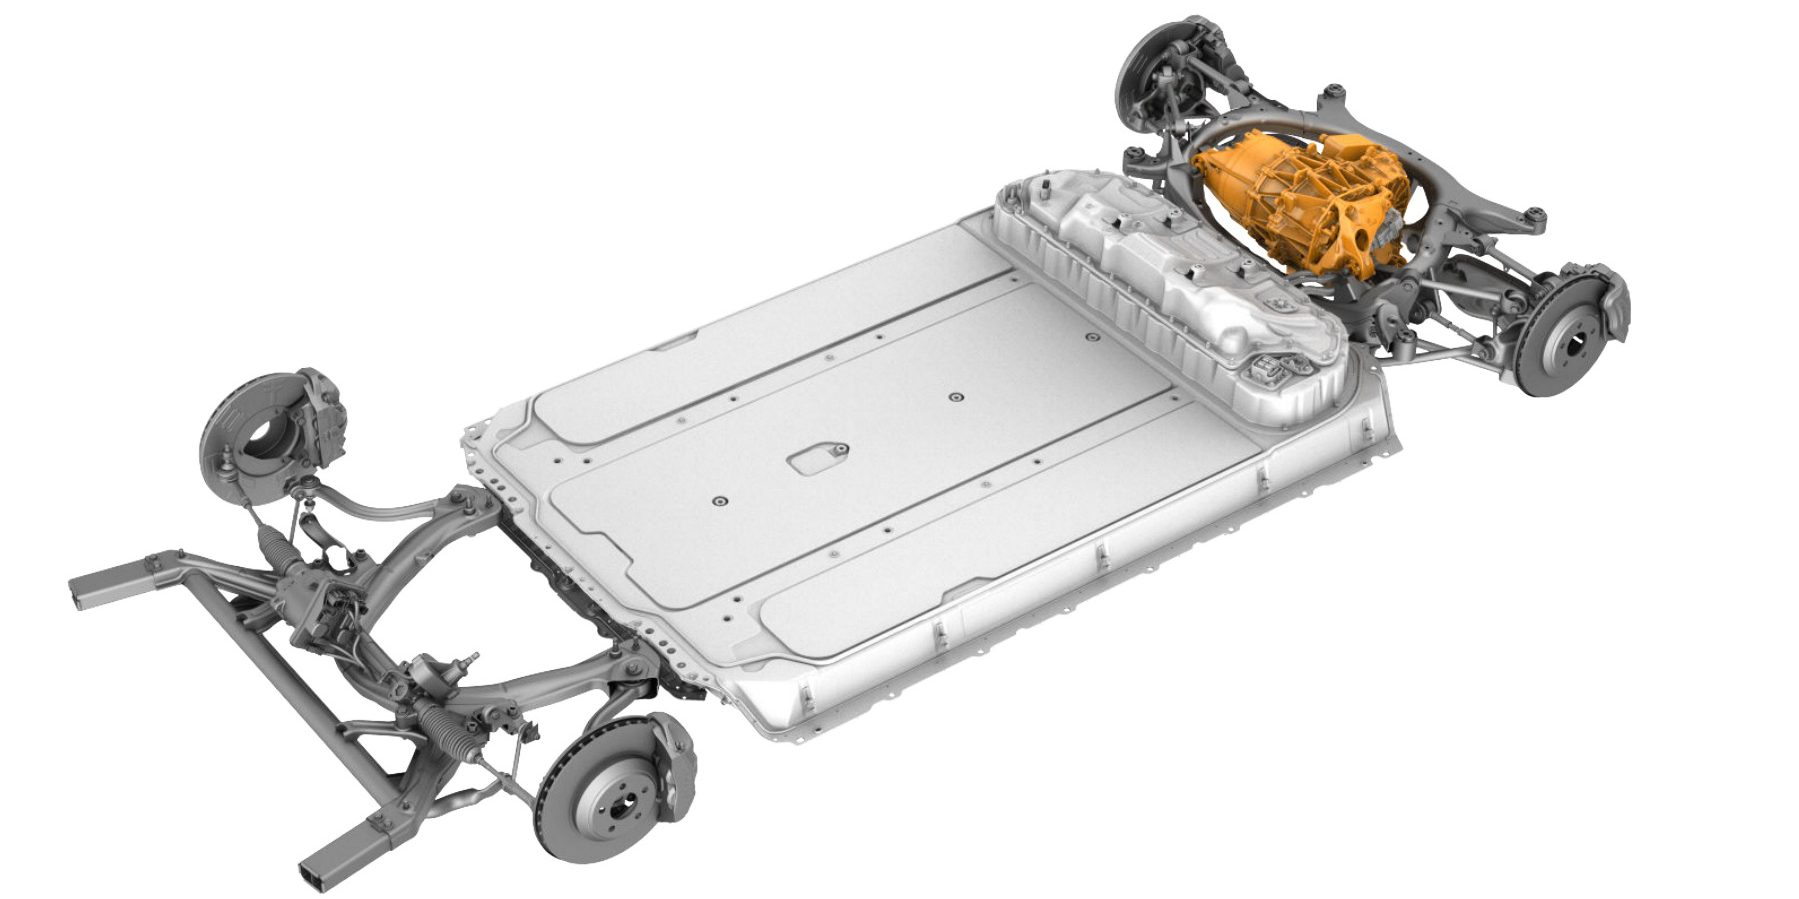 Tesla Model 3: interesting look at powertrain and chassis ...